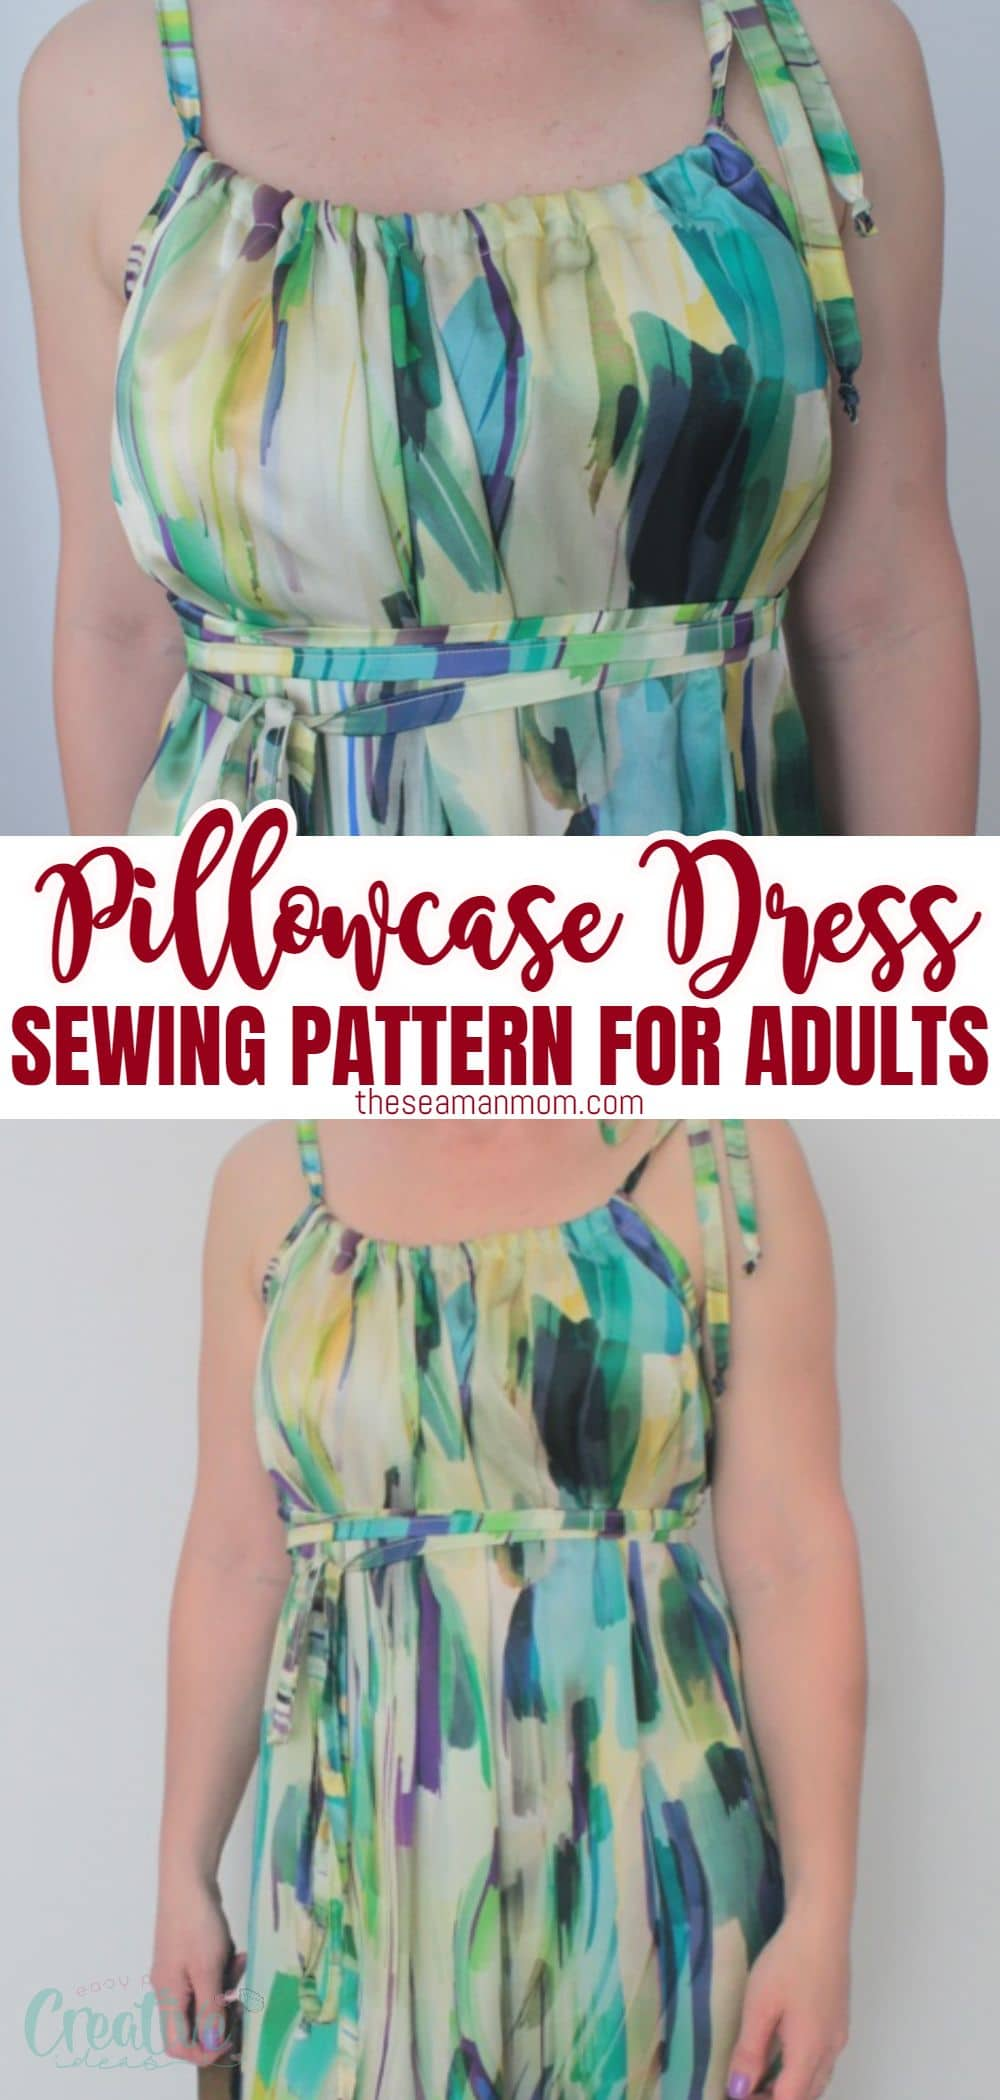 If you're looking for a dress pattern for ladies that is crazy easy to sew and ready to wear in no time, this pillowcase dress for adults is your best bet! Perfect beginners project, this pillowcase dress for women is both cute and super comfy to wear! via @petroneagu